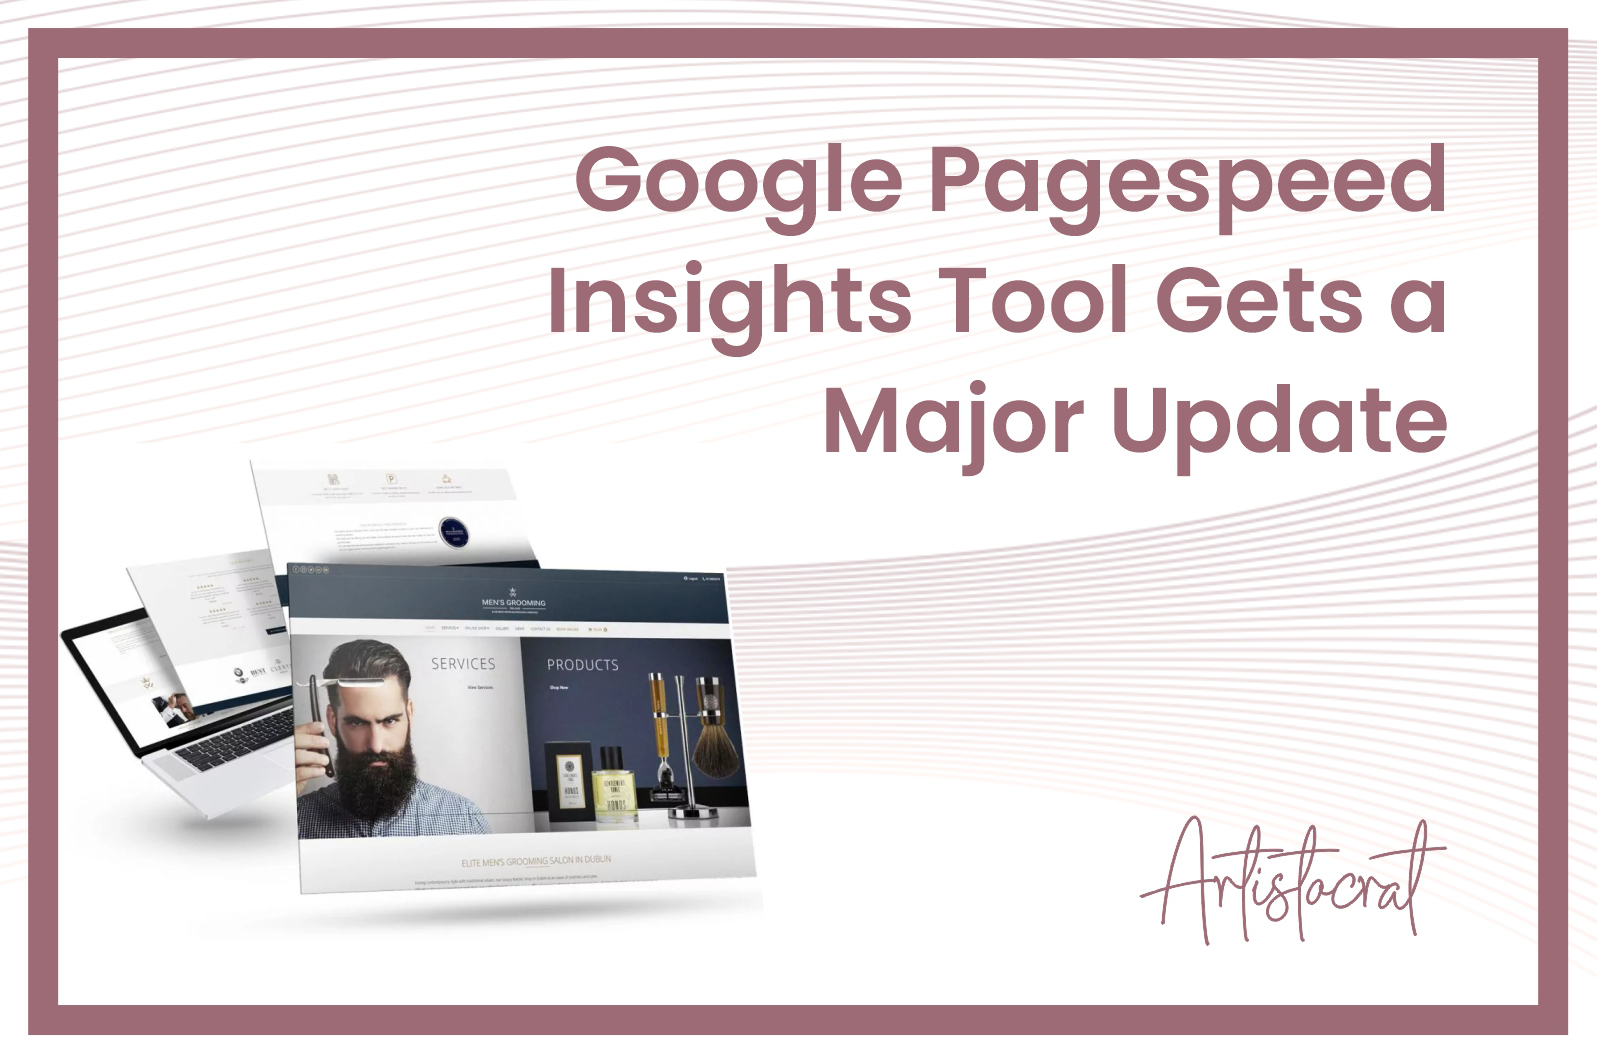 Google-Pagespeed-Insights-Tool-Get-Major-Update